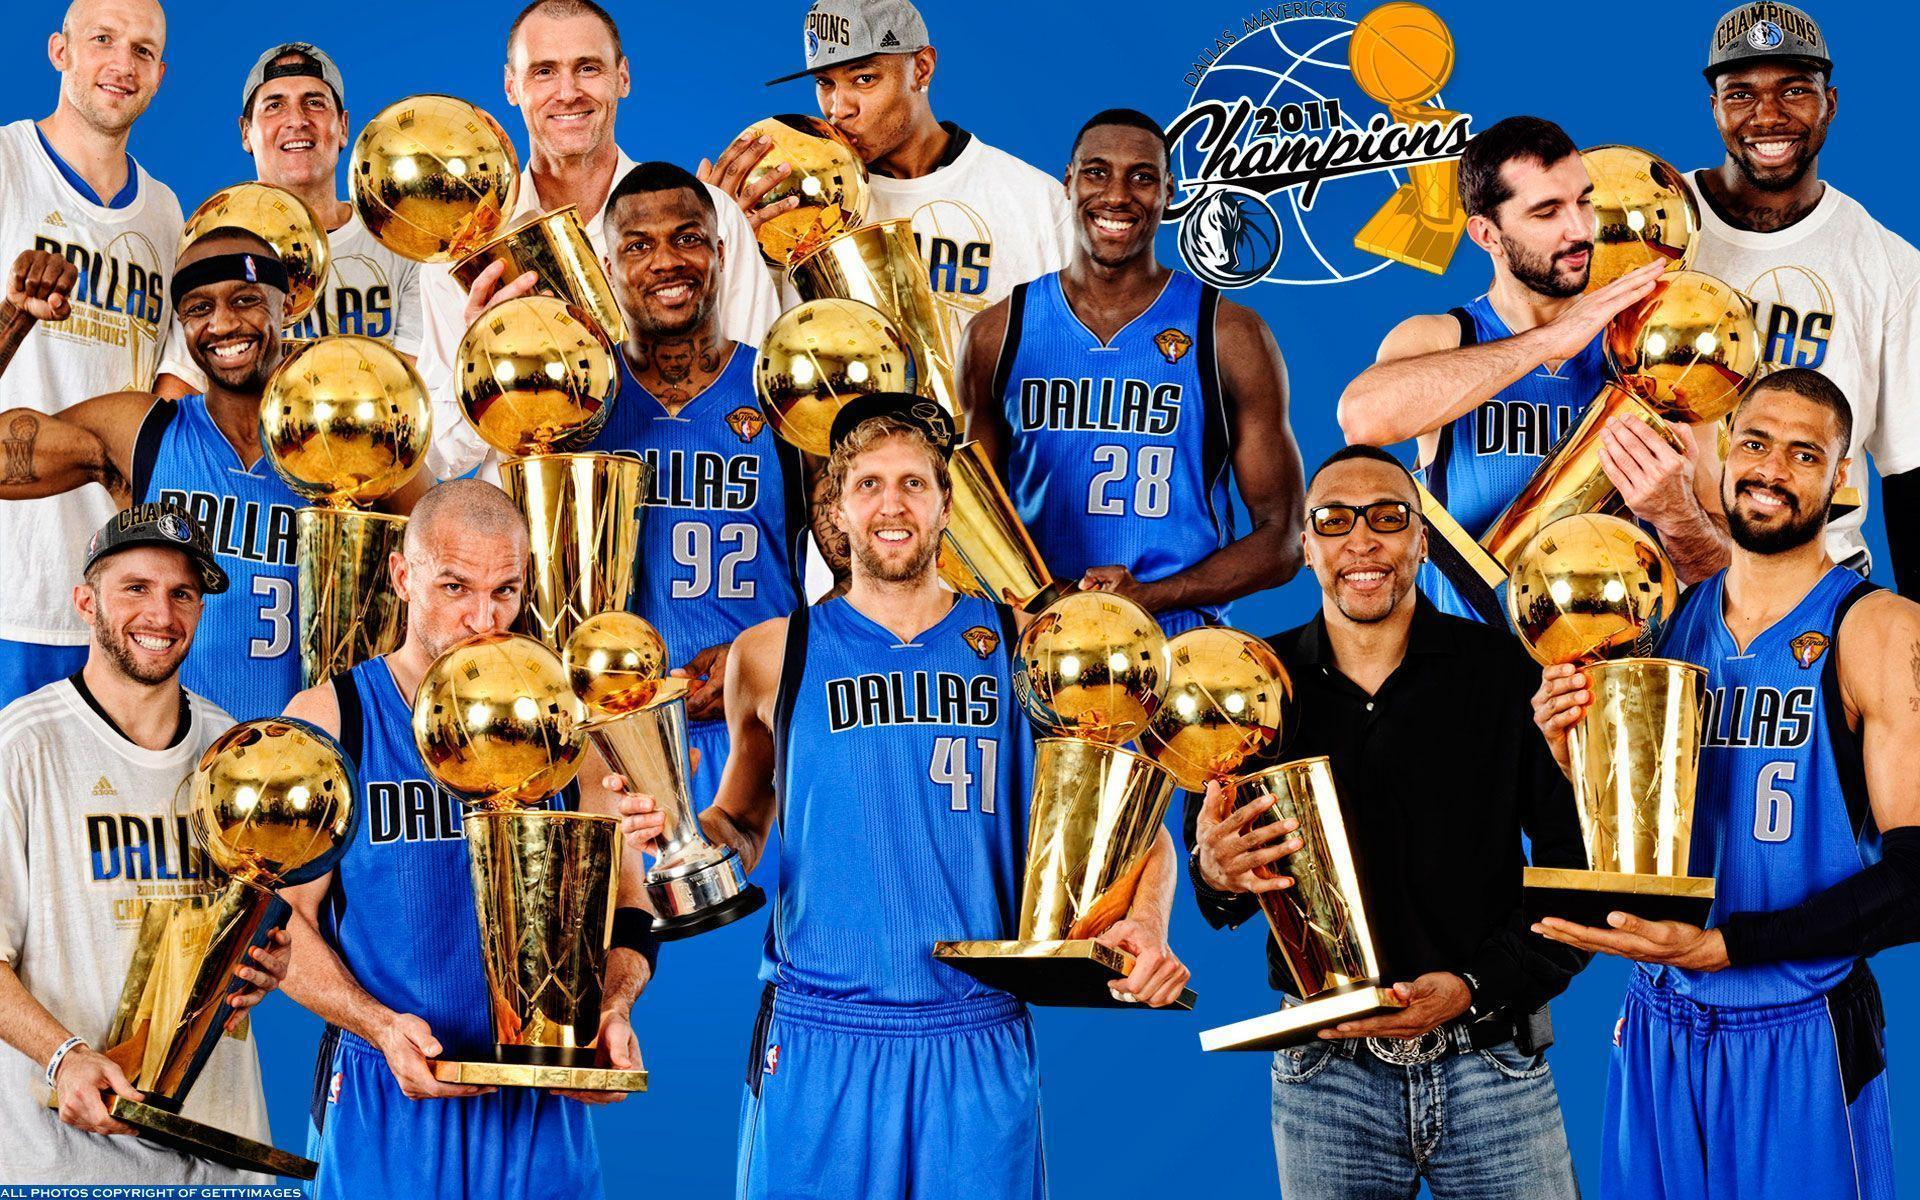 Dallas Mavericks 2011 Players With Trophies Widescreen Wallpaper ...